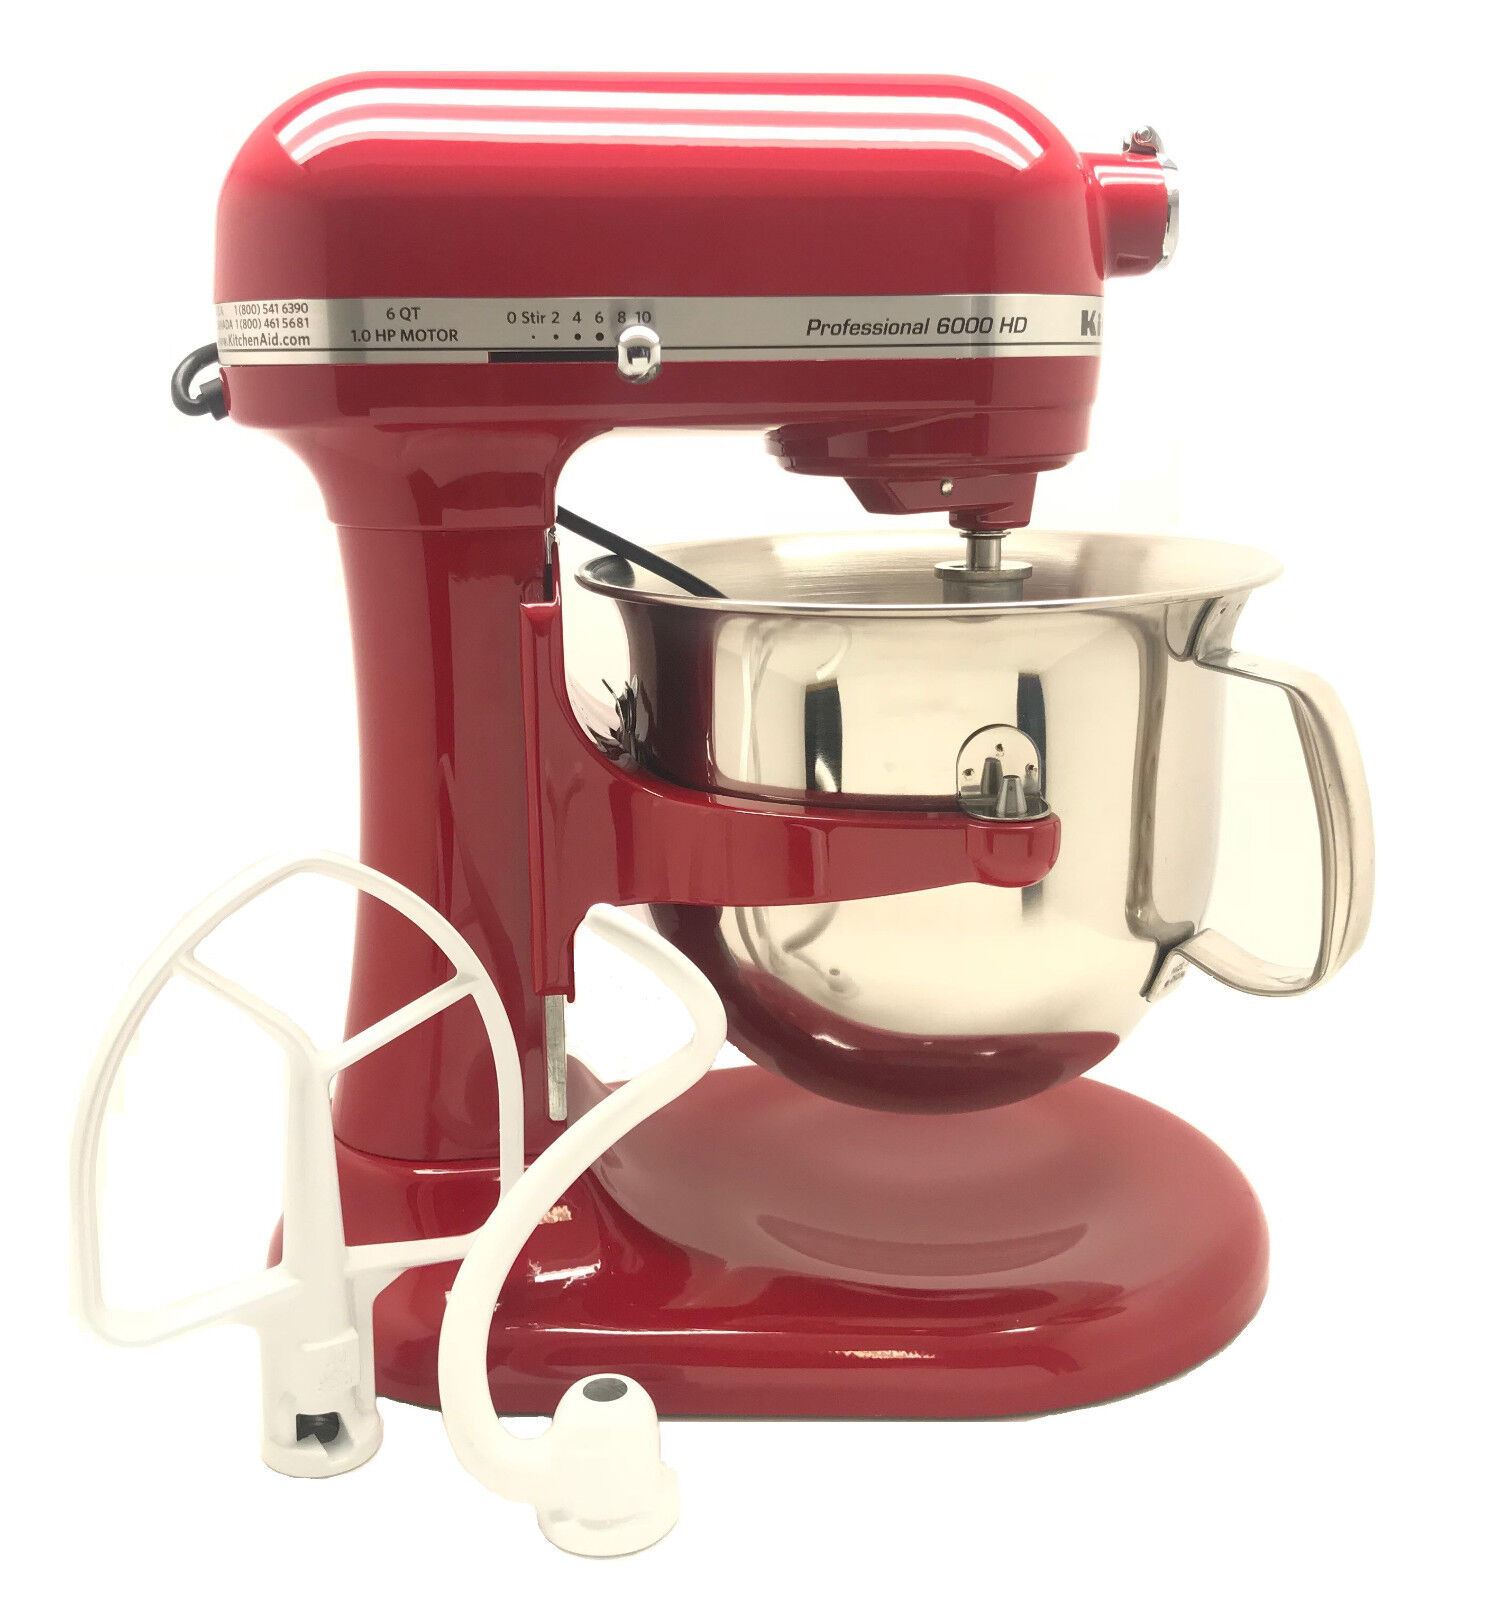 KitchenAid R KSM6573ER 6 Qt Professional Bol-Lift Stand Mixer Empire Rouge